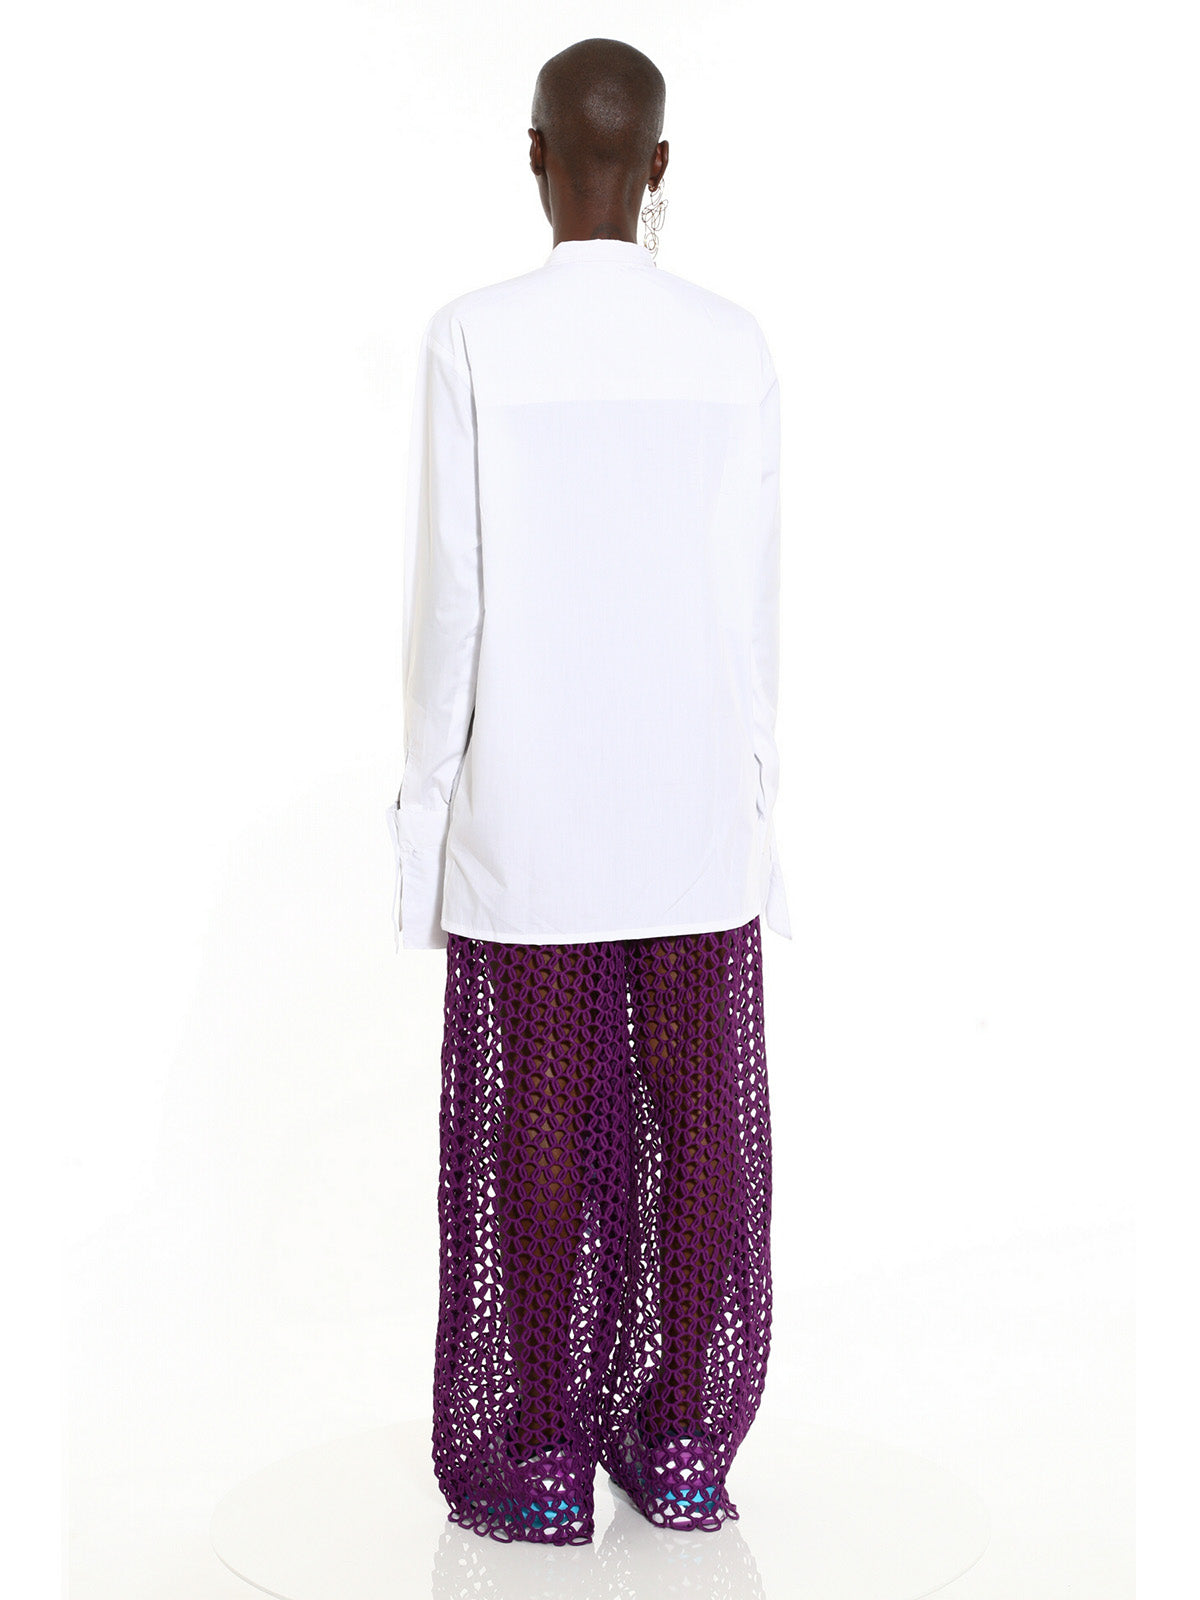 Ifunanya Draped White Shirt